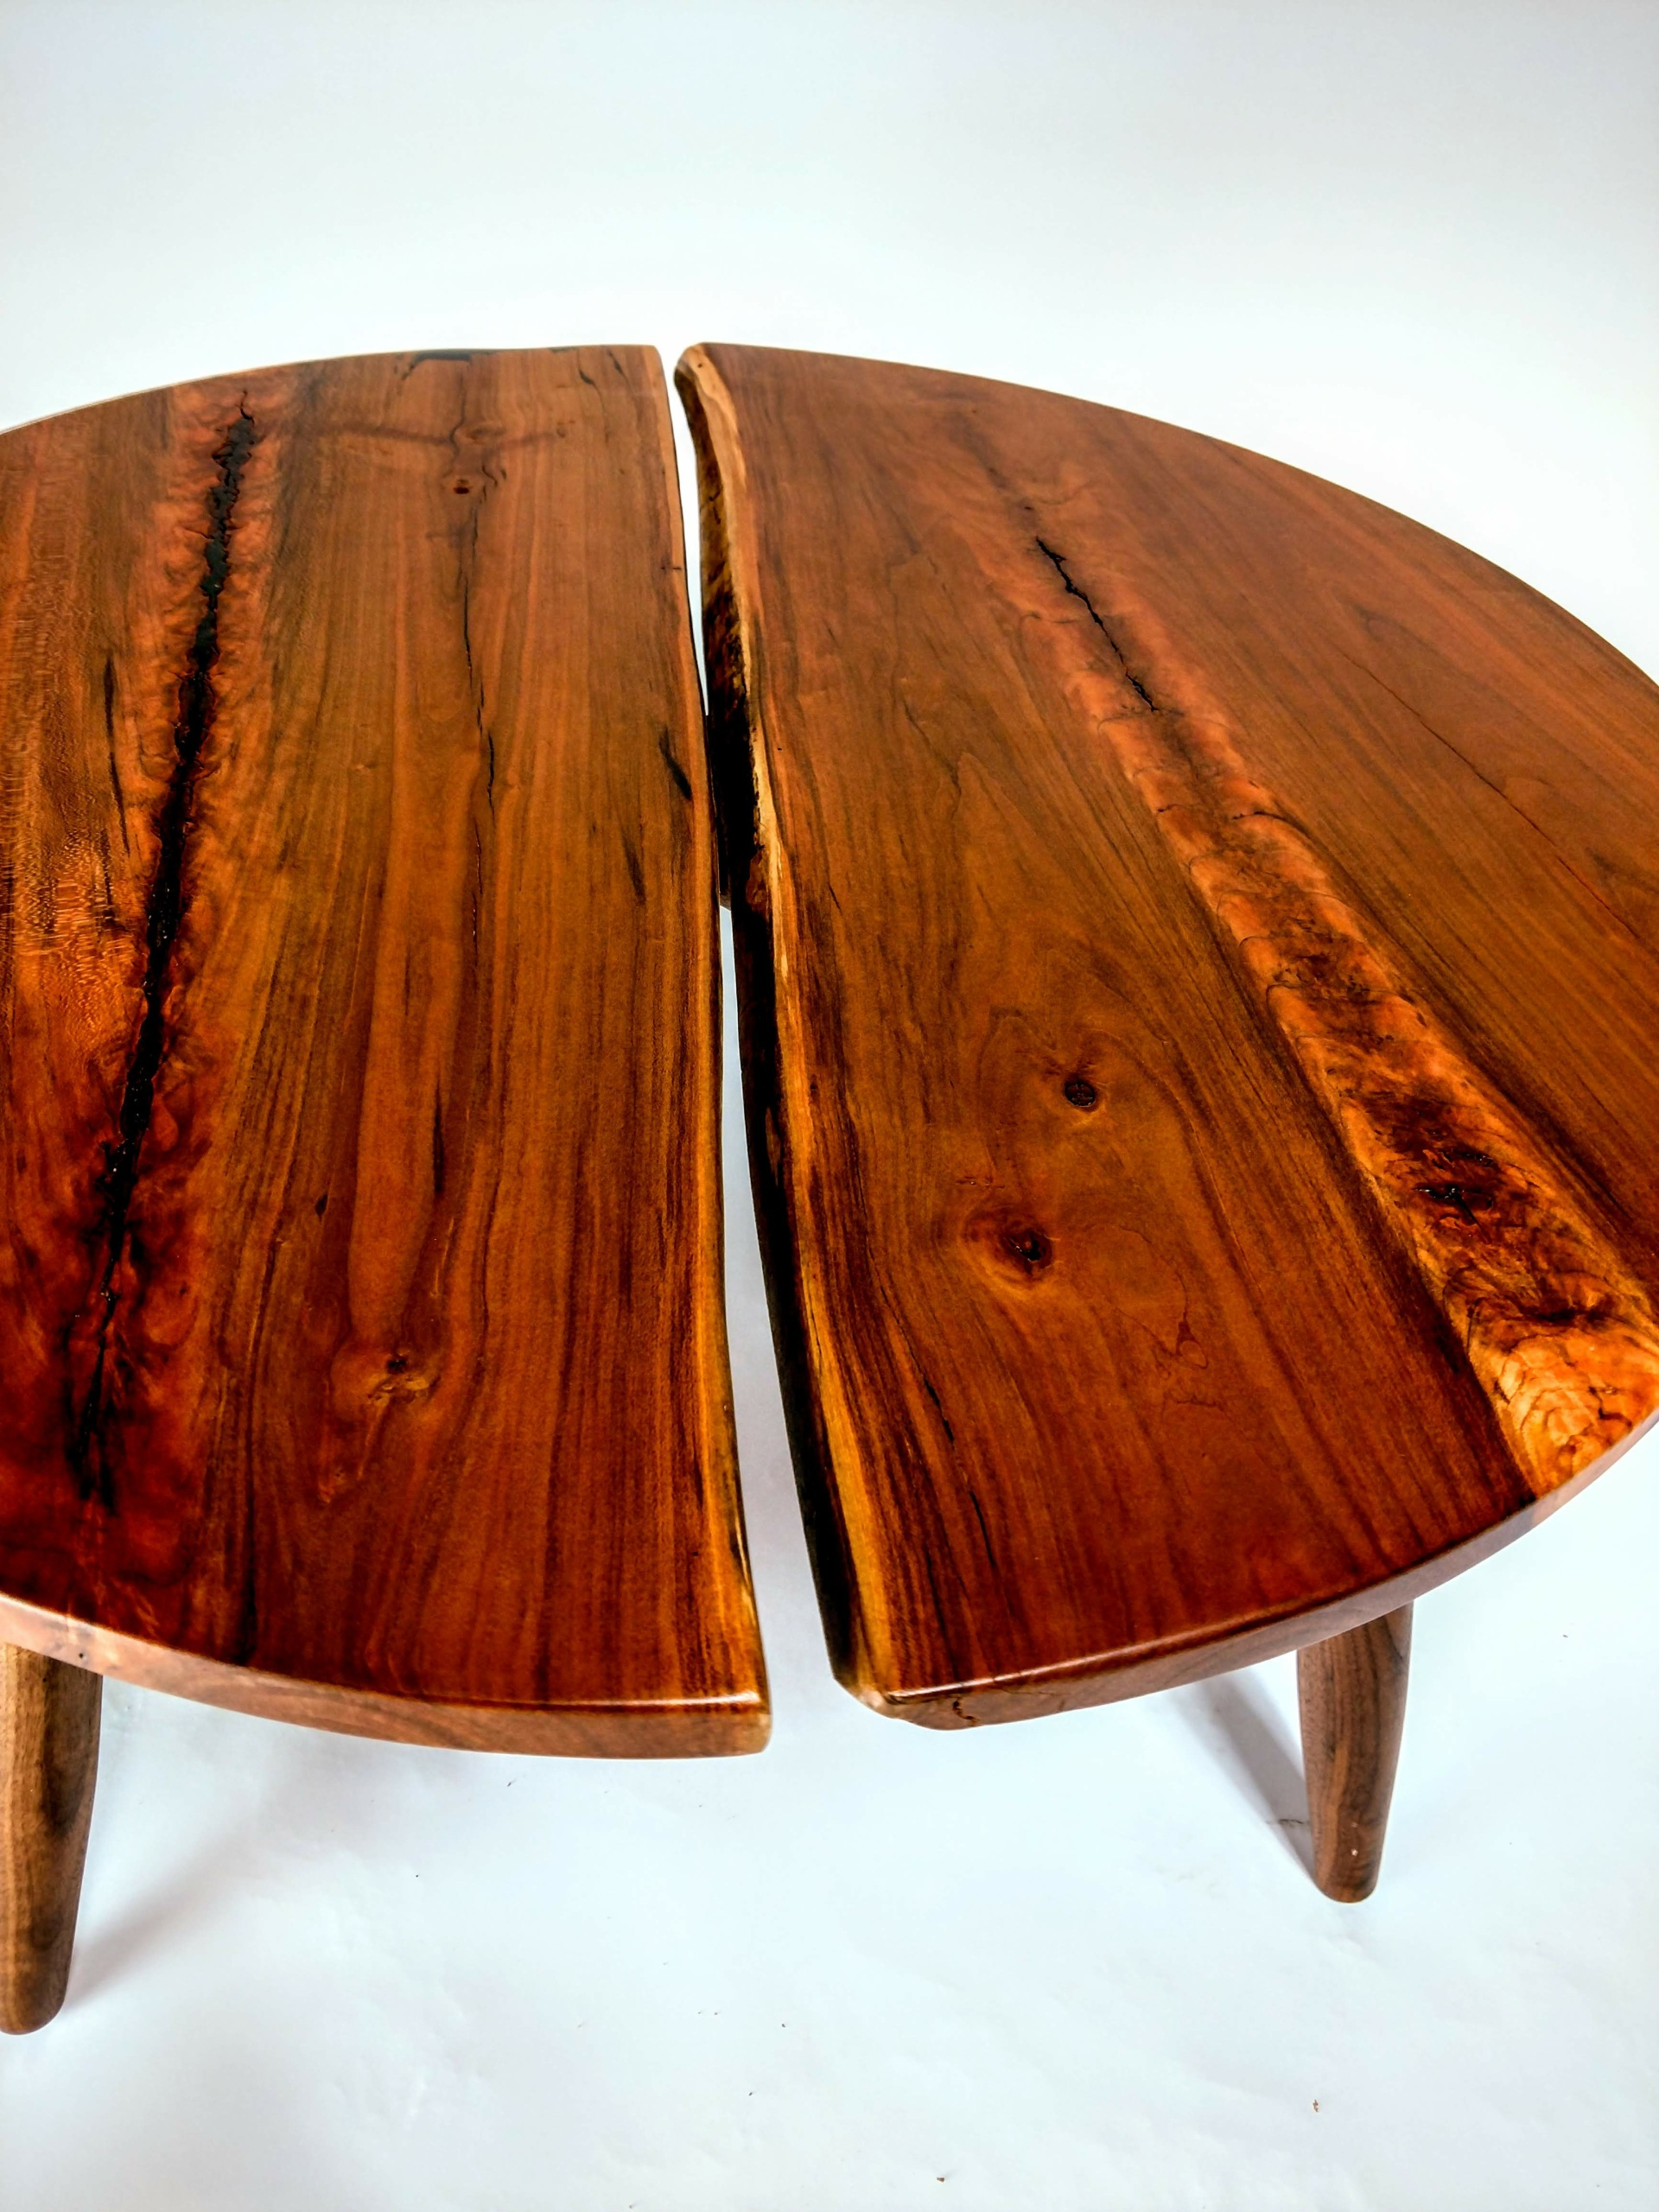 guice woodworks